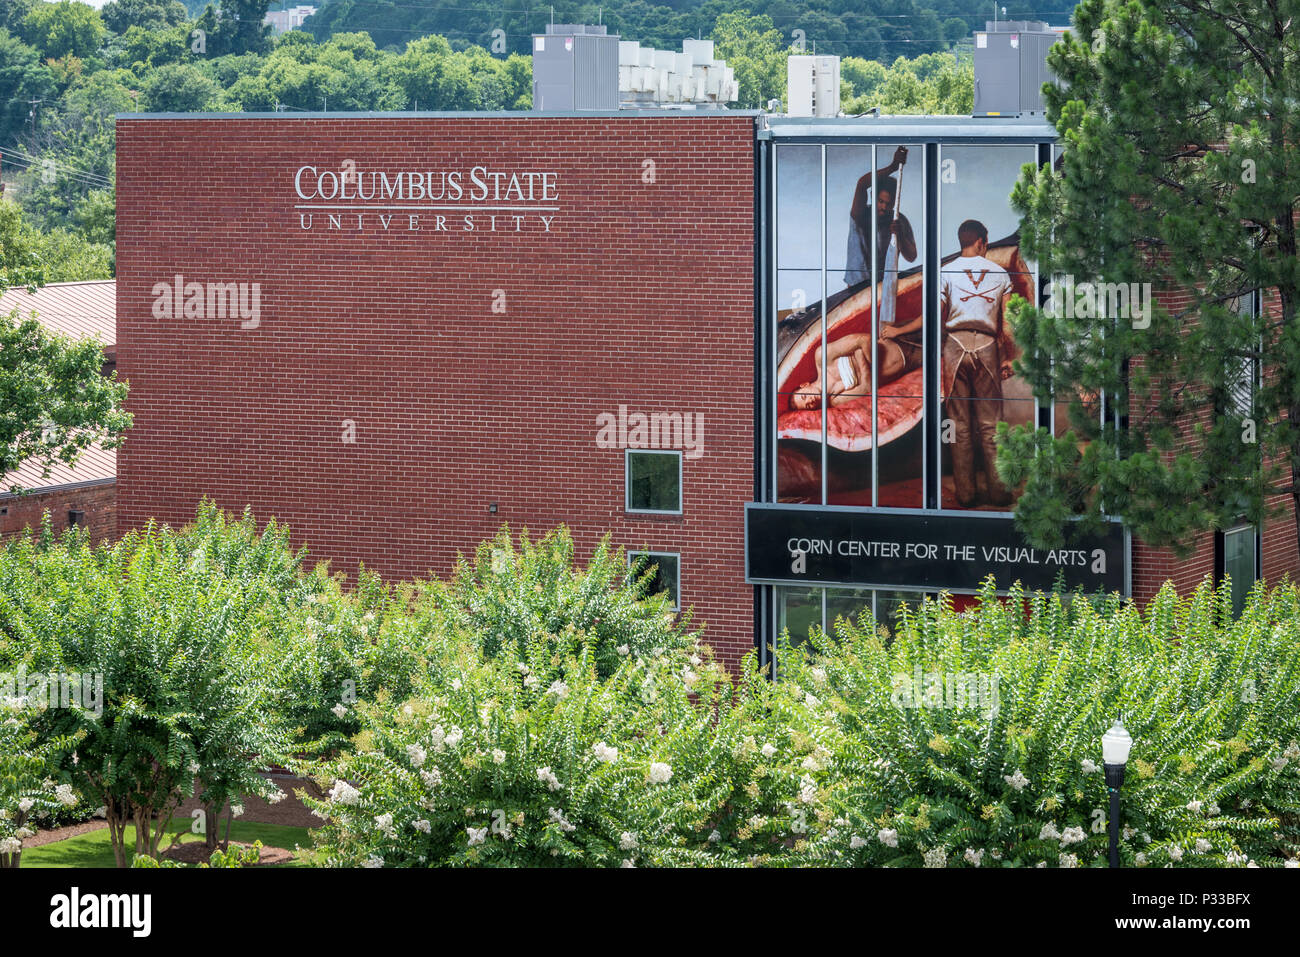 Columbus State University's Corn Center for the Visual Arts in Uptown Columbus, Georgia along the Chattahoochee River. (USA) - Stock Image